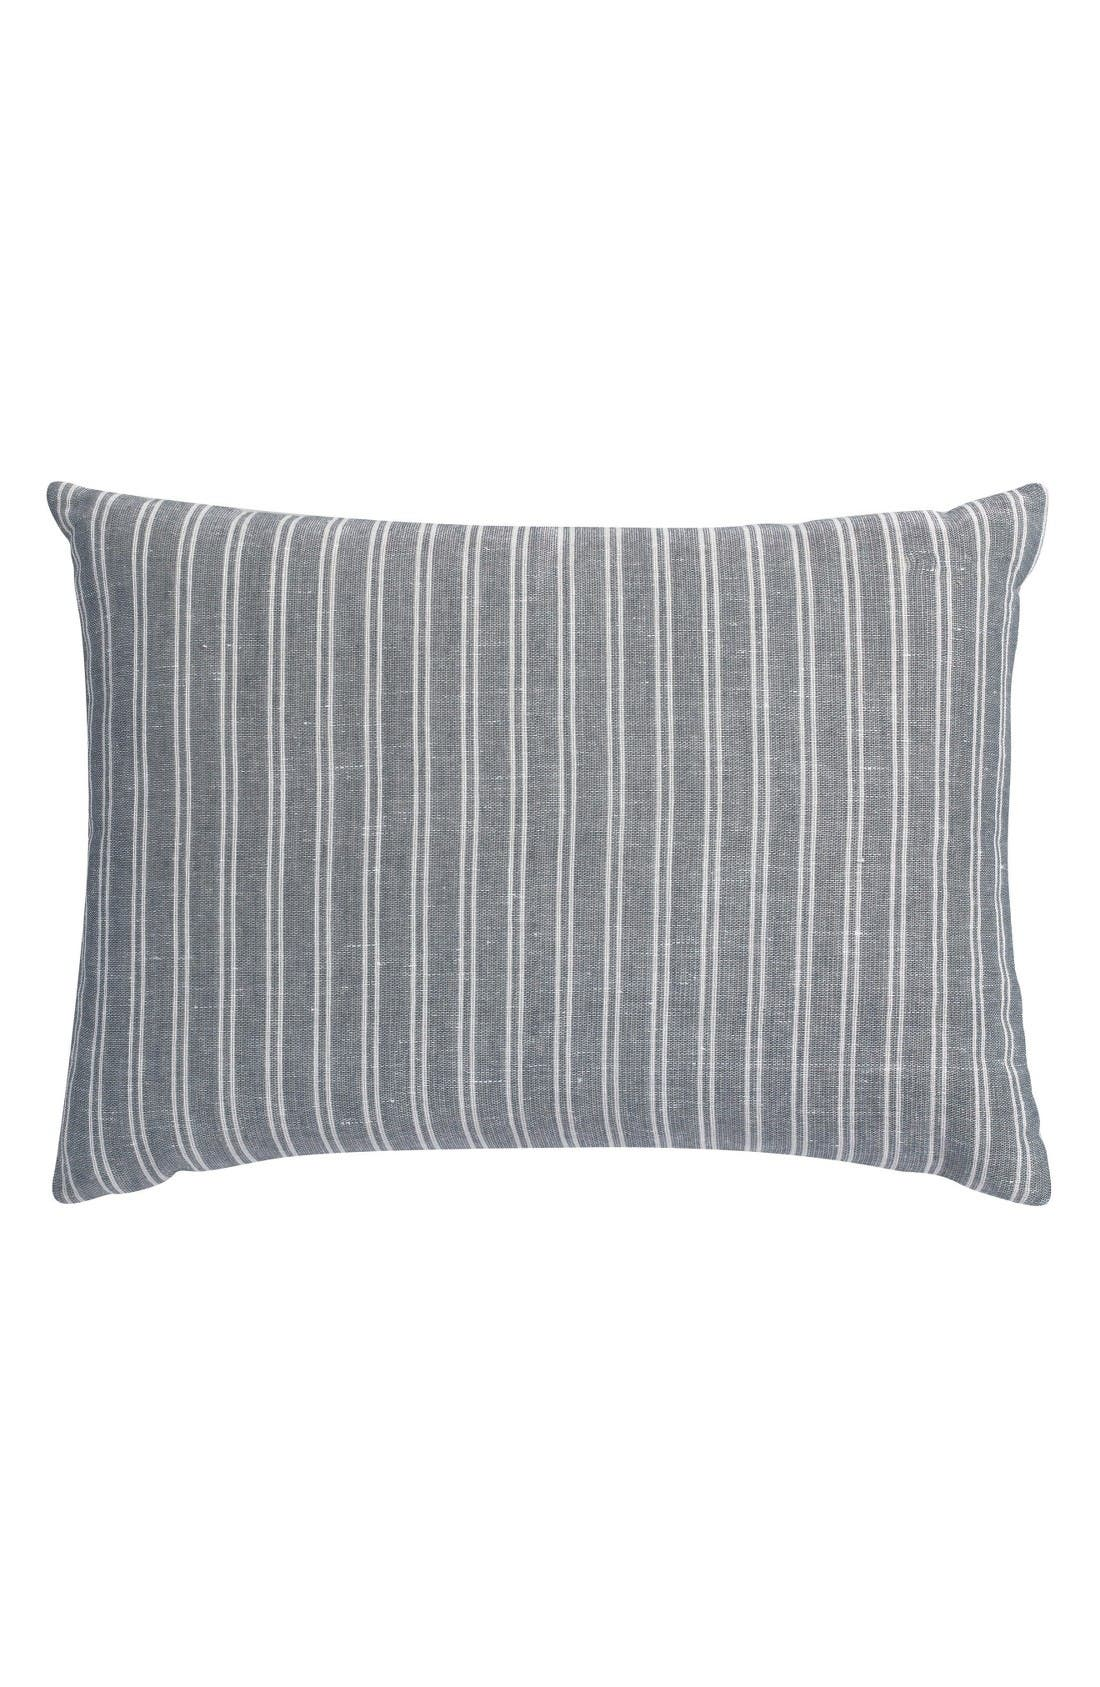 Main Image - Portico Park Ave Stripe Organic Cotton Accent Pillow